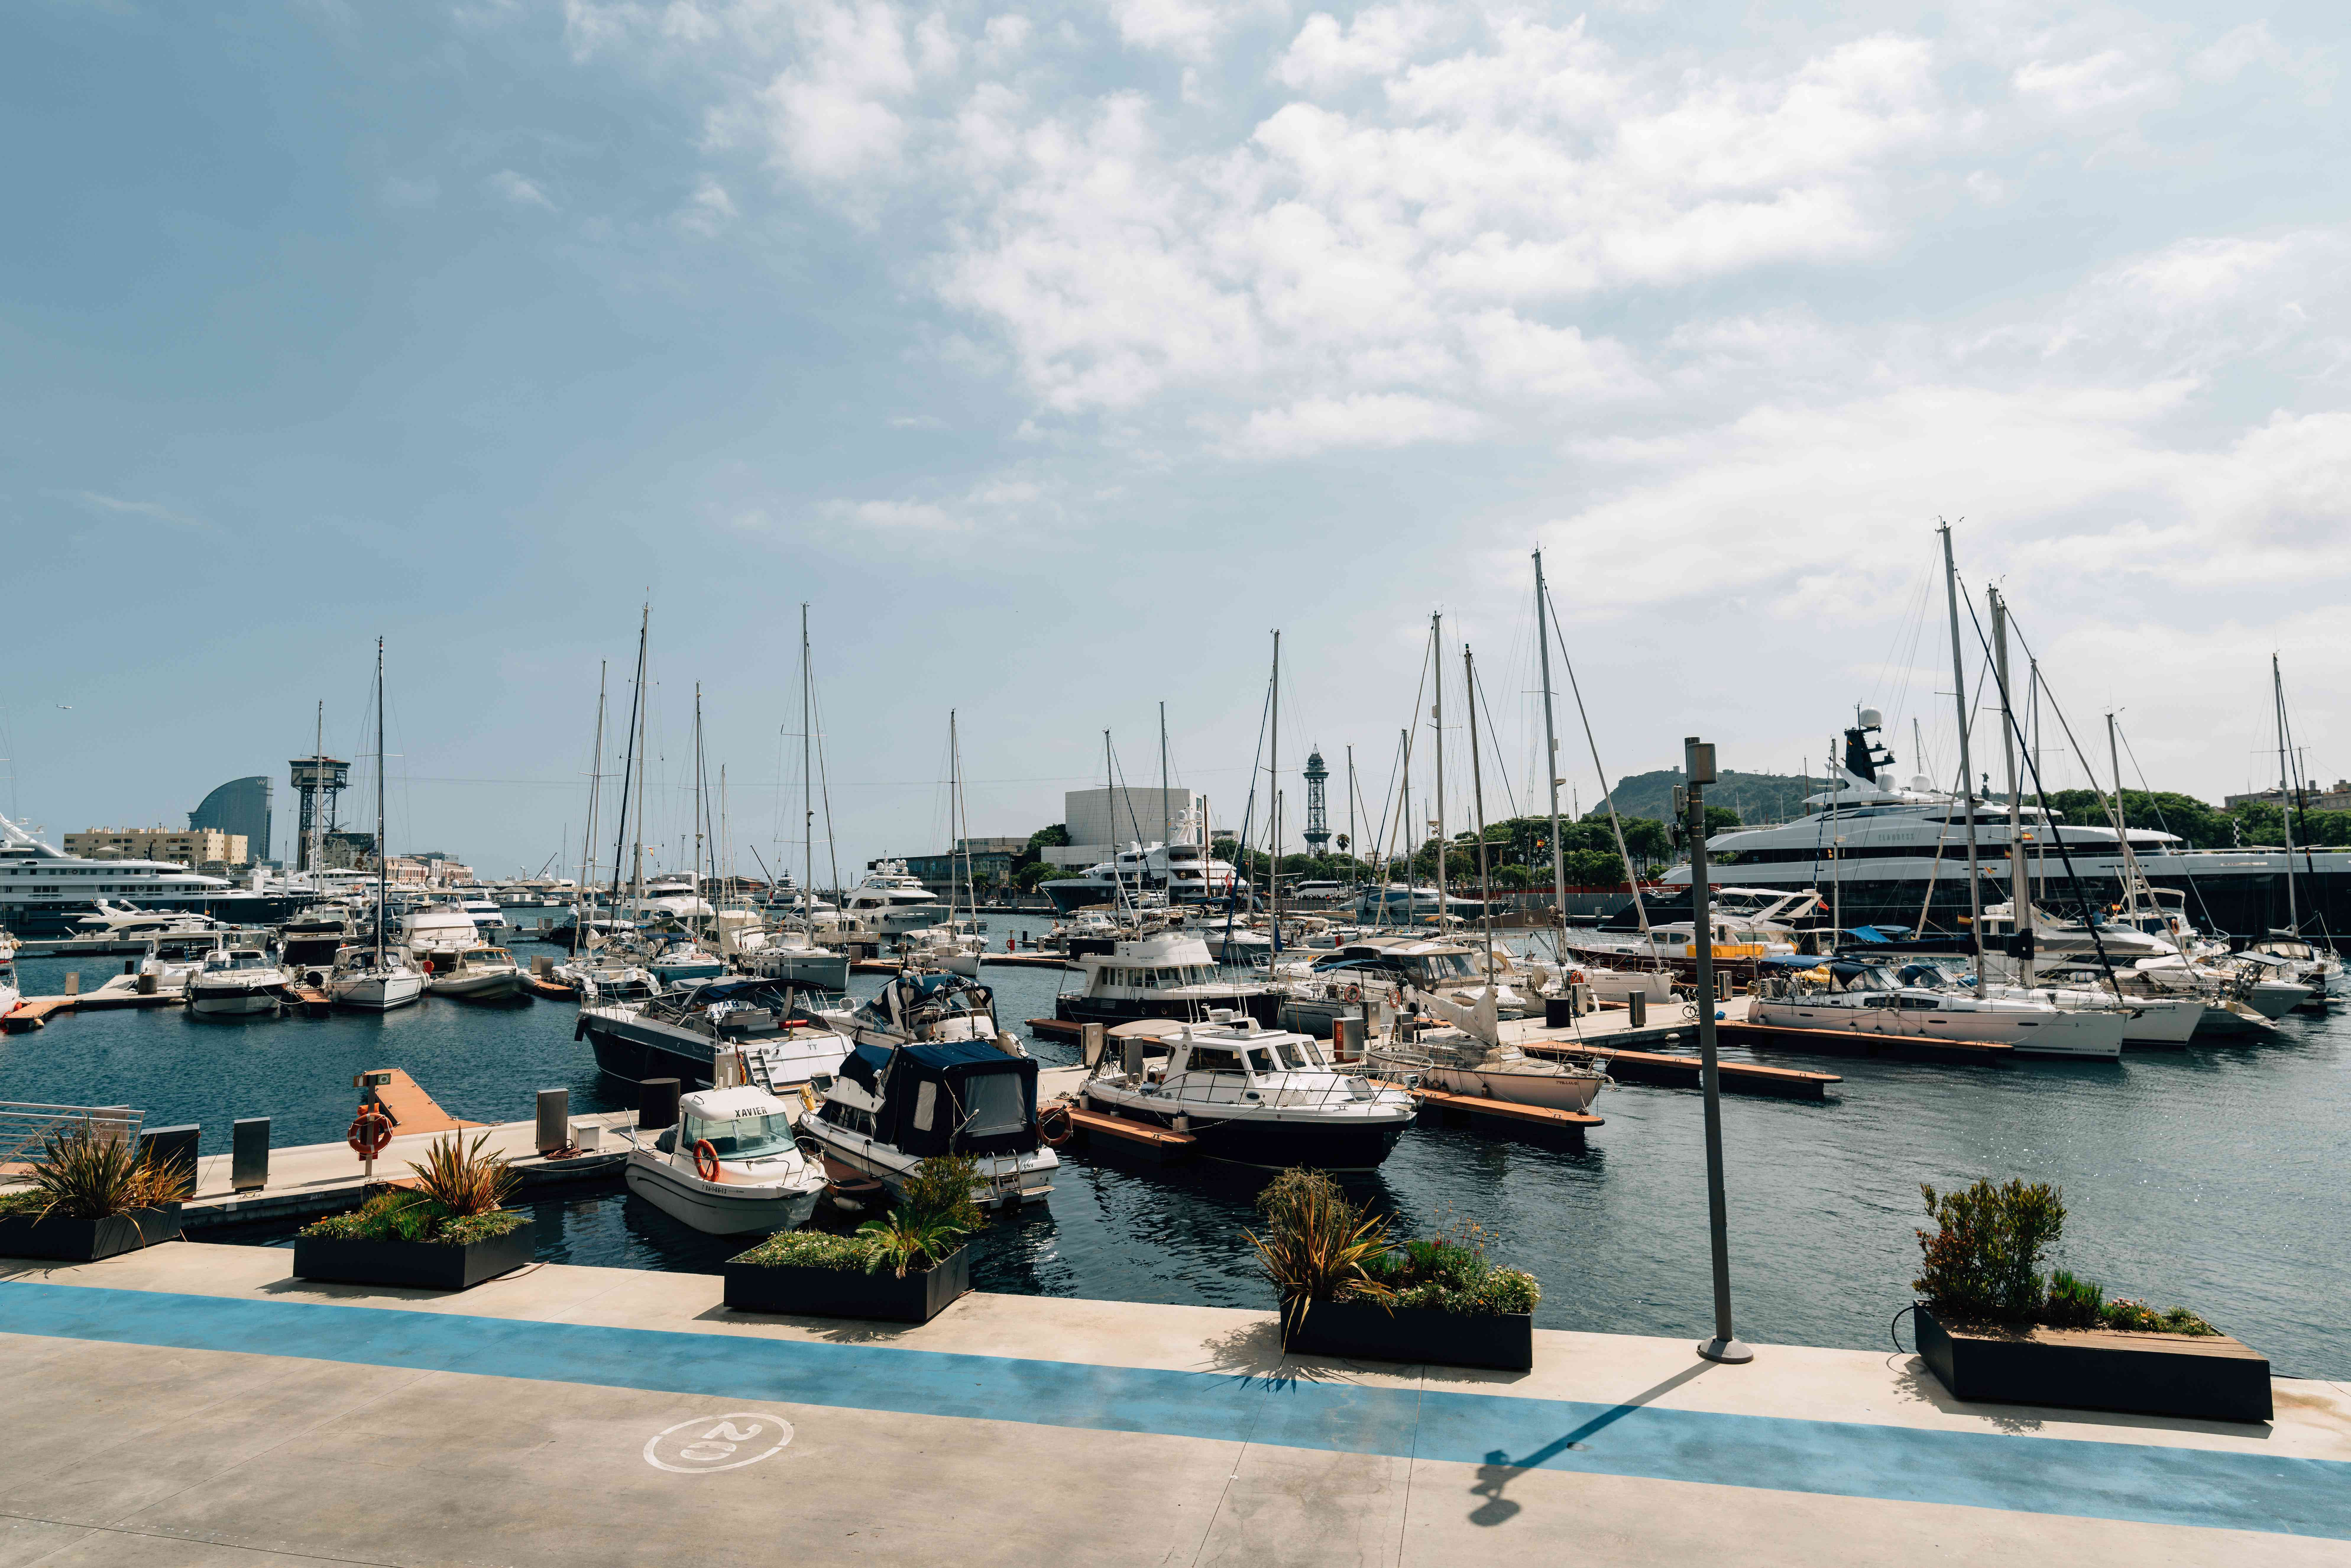 Boats docked at Port Vell